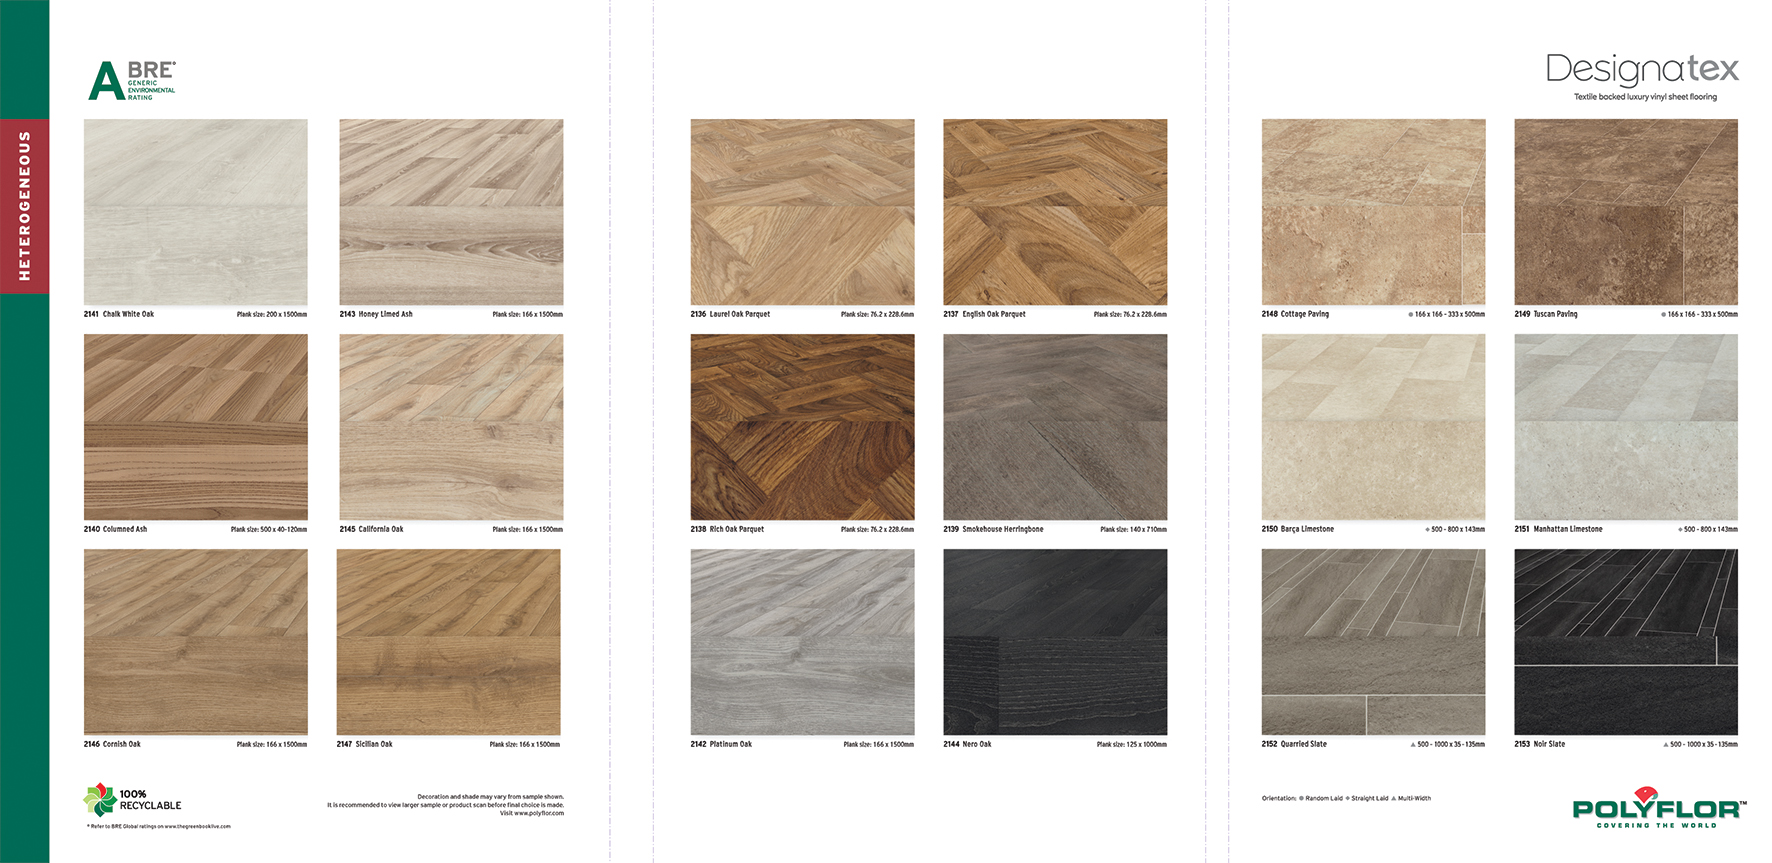 Designatex Heavy Domestic Light Commercial Wood And